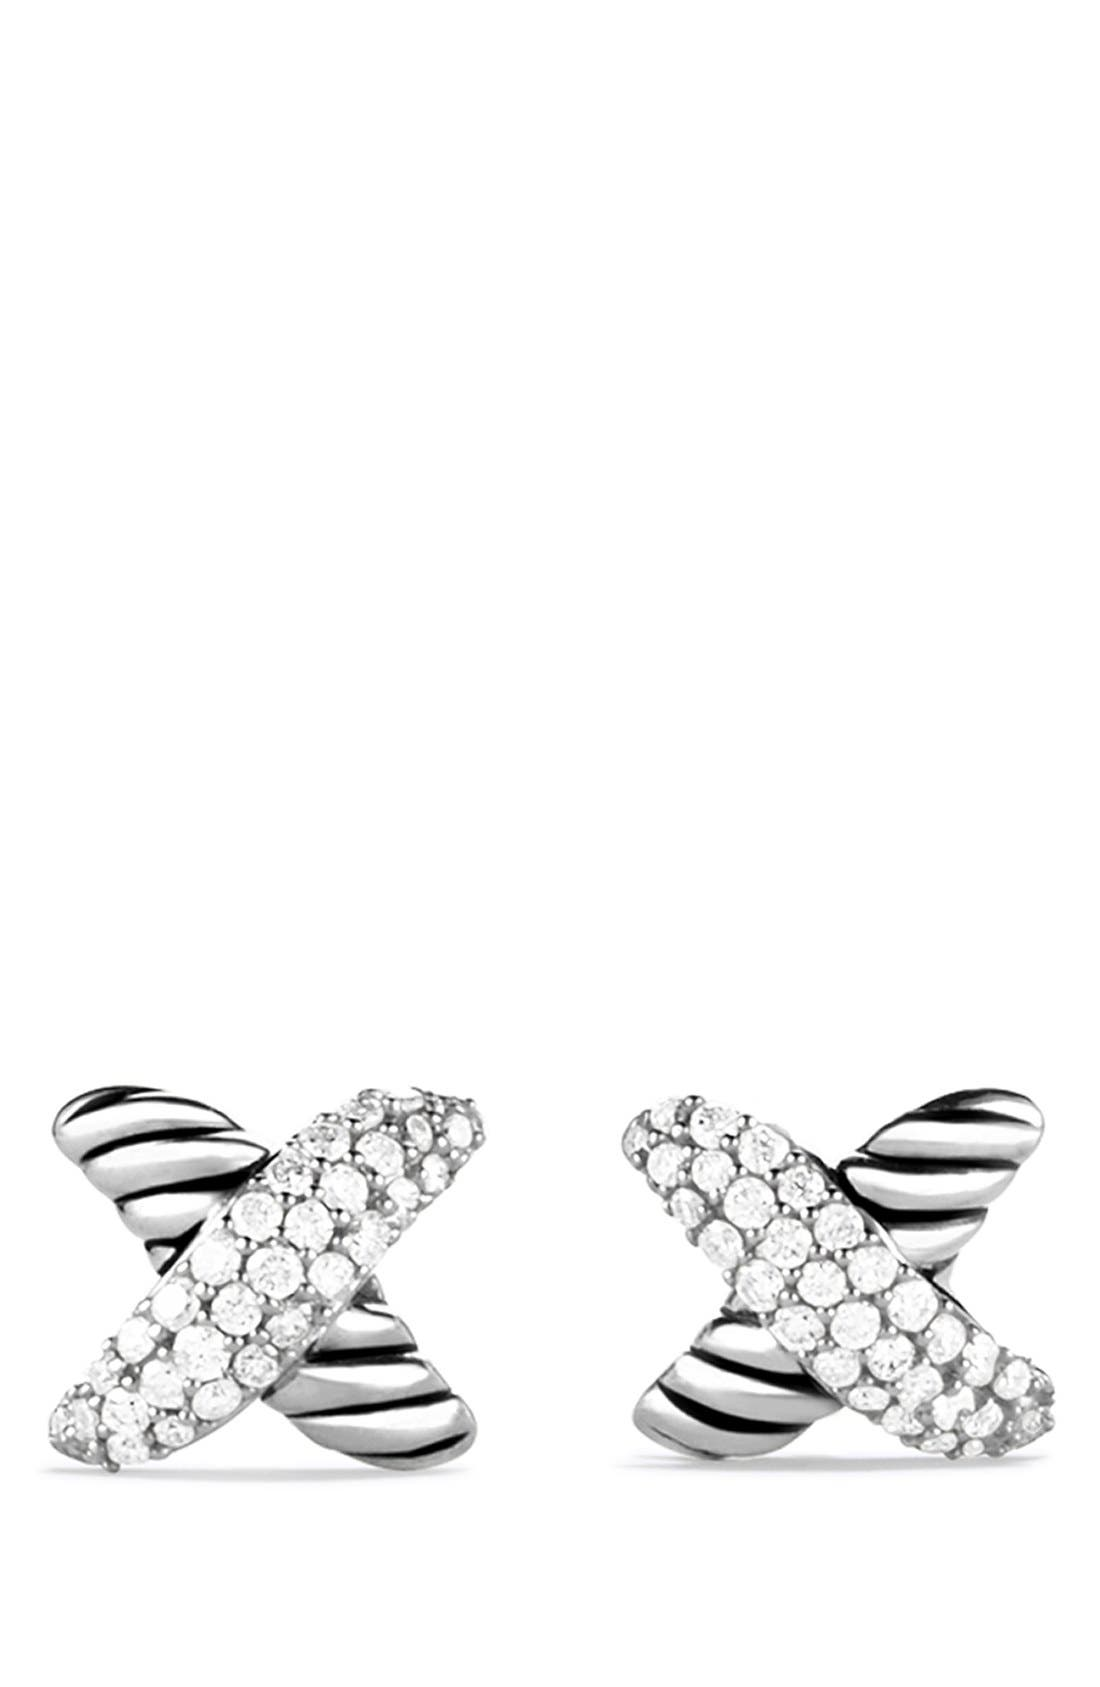 'X' Earrings with Diamonds,                             Alternate thumbnail 2, color,                             Diamond